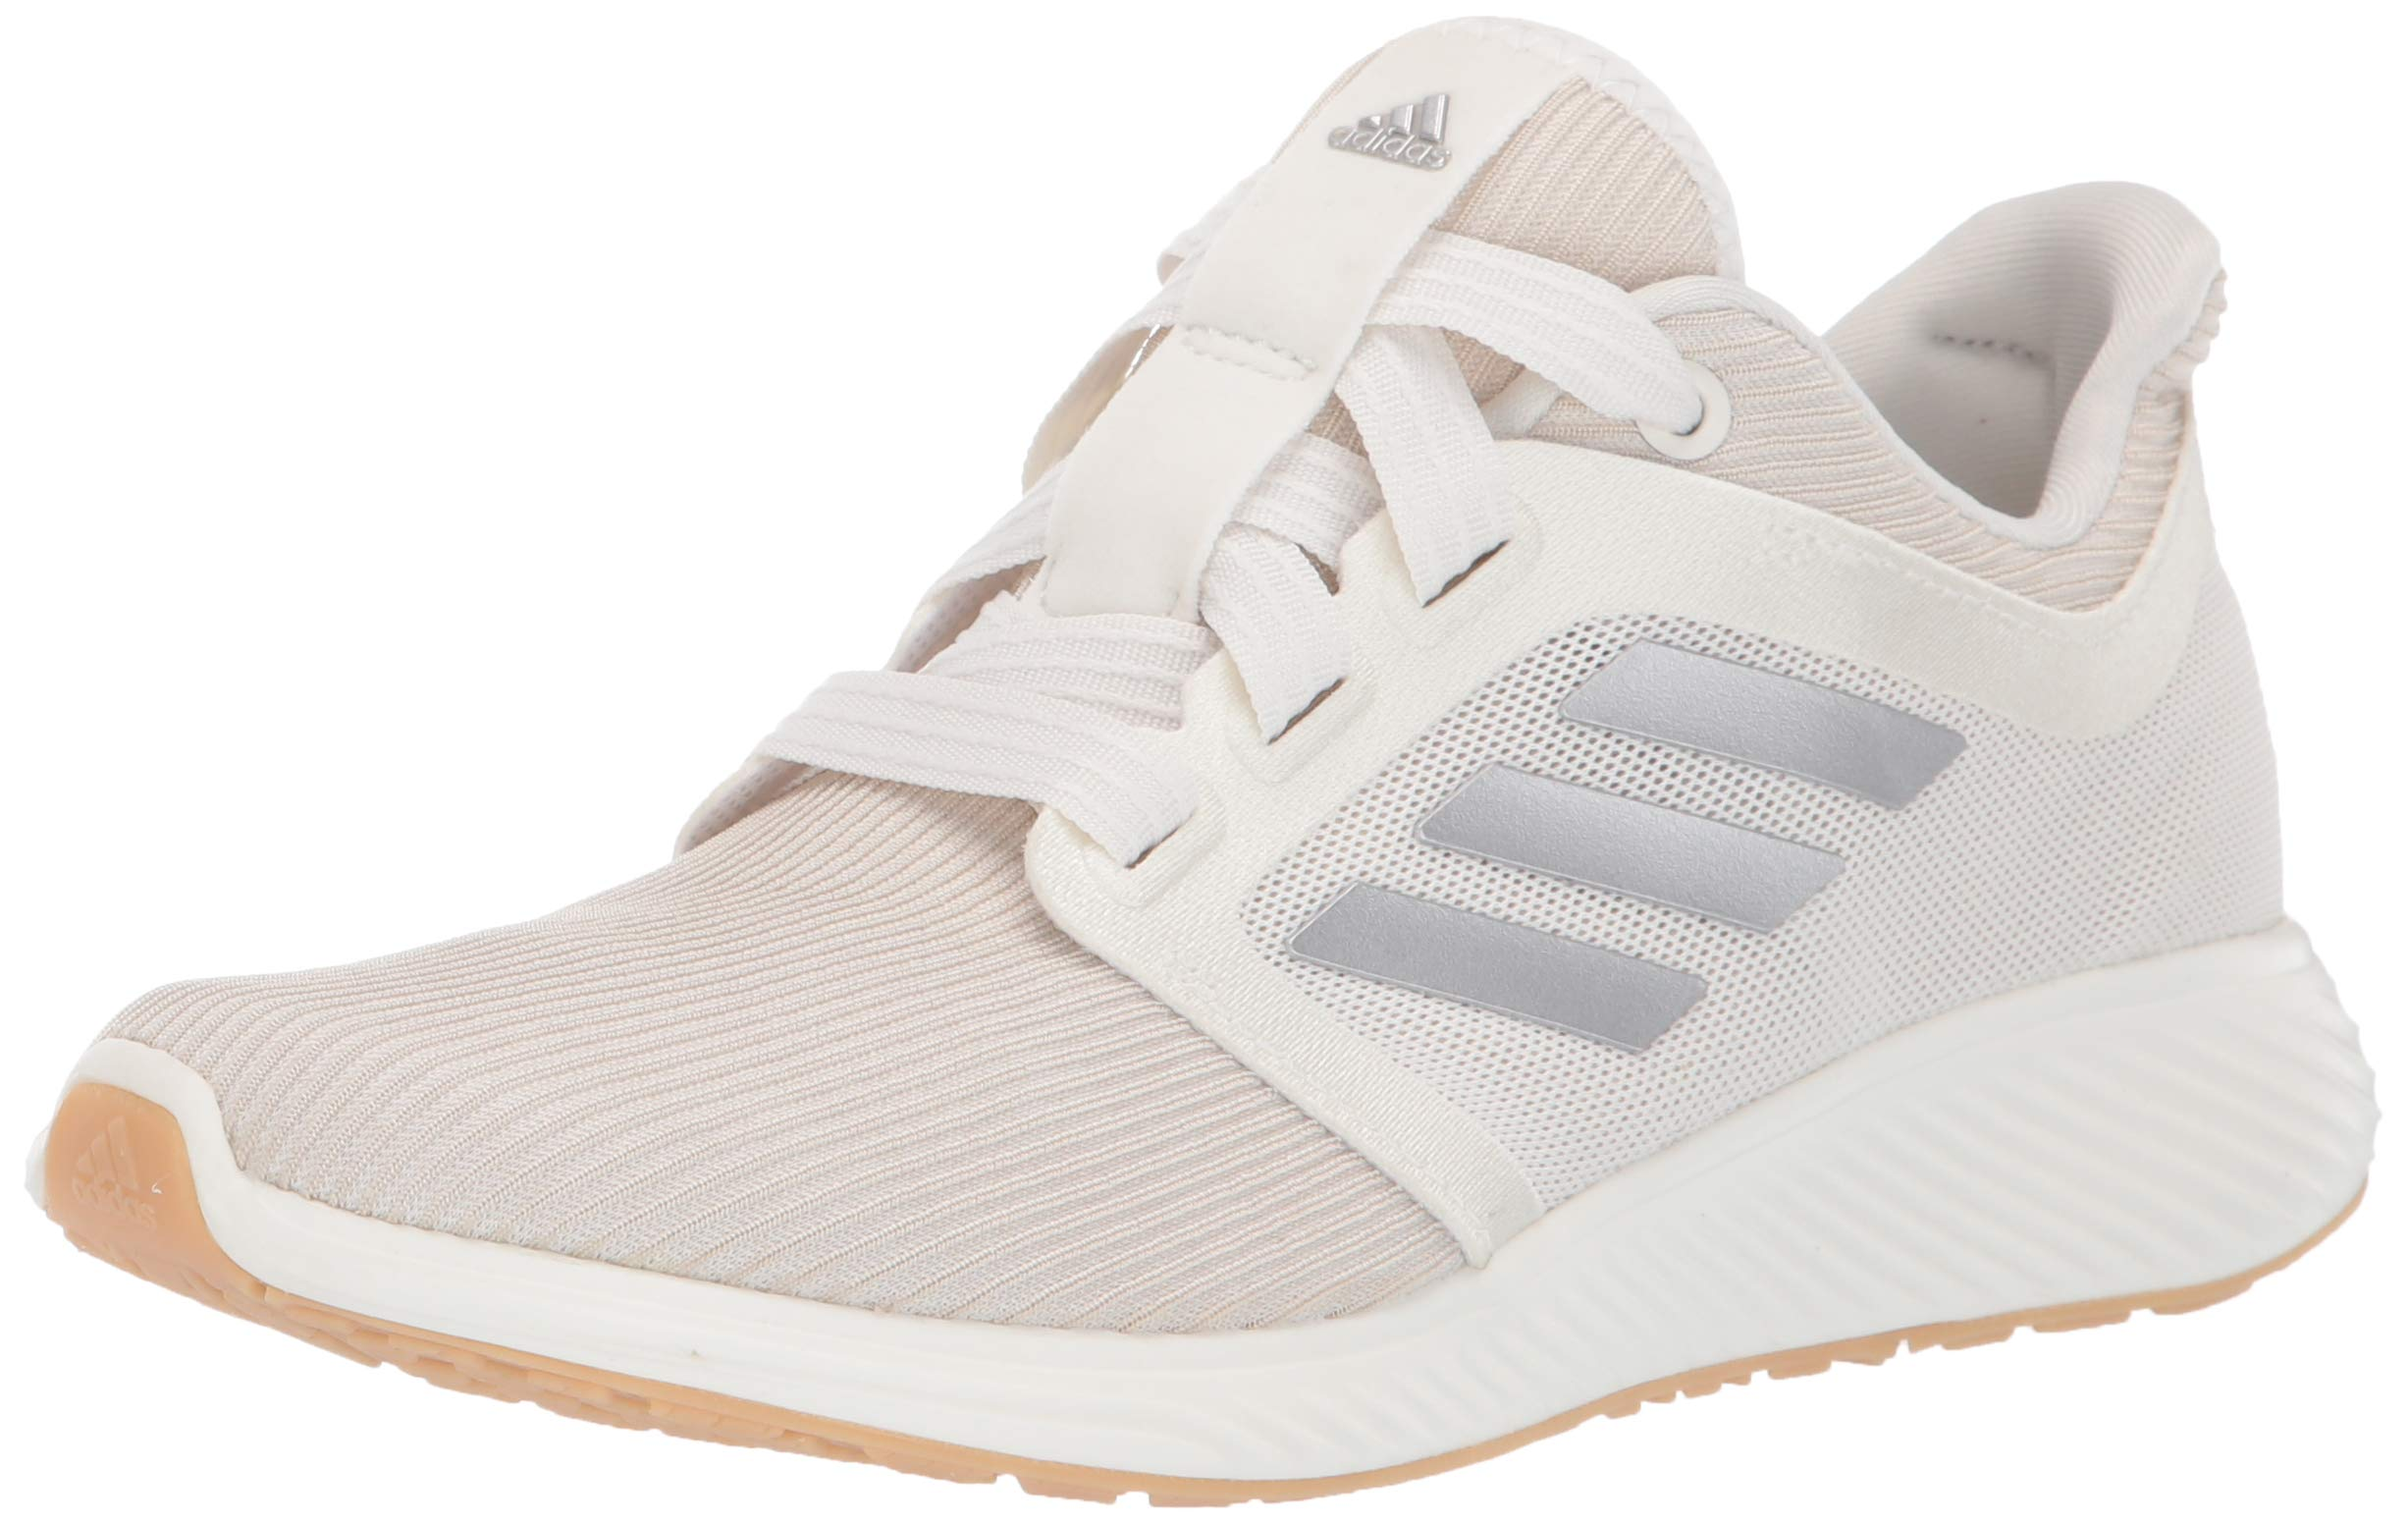 adidas Women's Edge Lux 3 Running Shoe, st Pale Nude/tech Silver Metallic/Cloud White, 5.5 M US